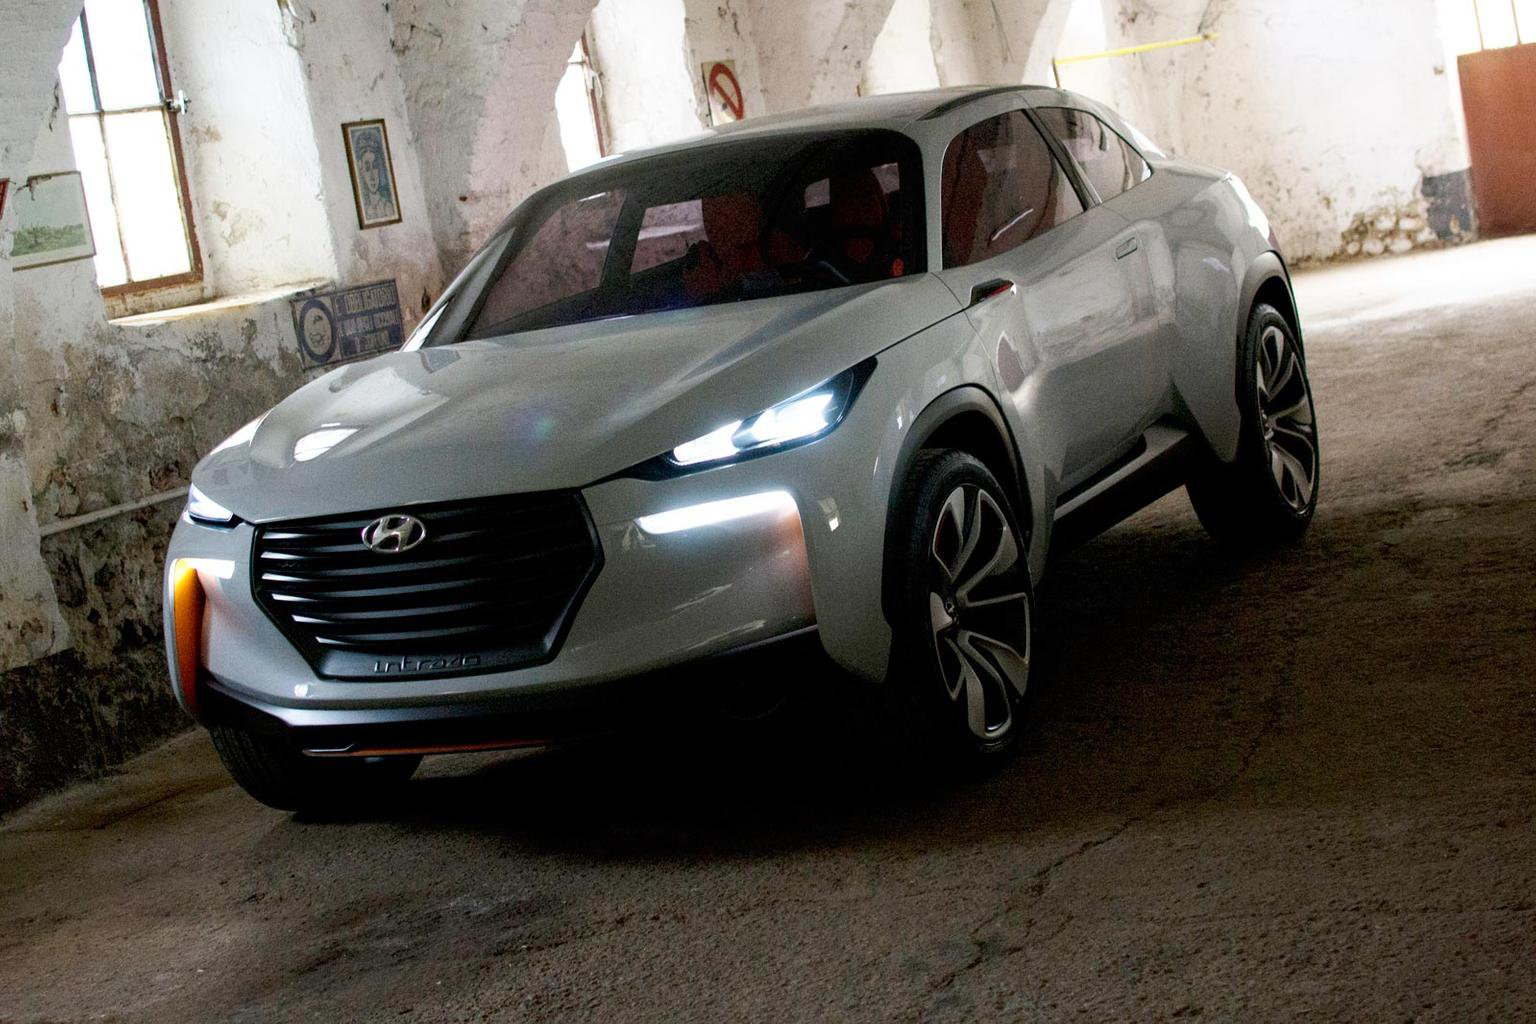 Hyundai previews hydrogen-powered SUV